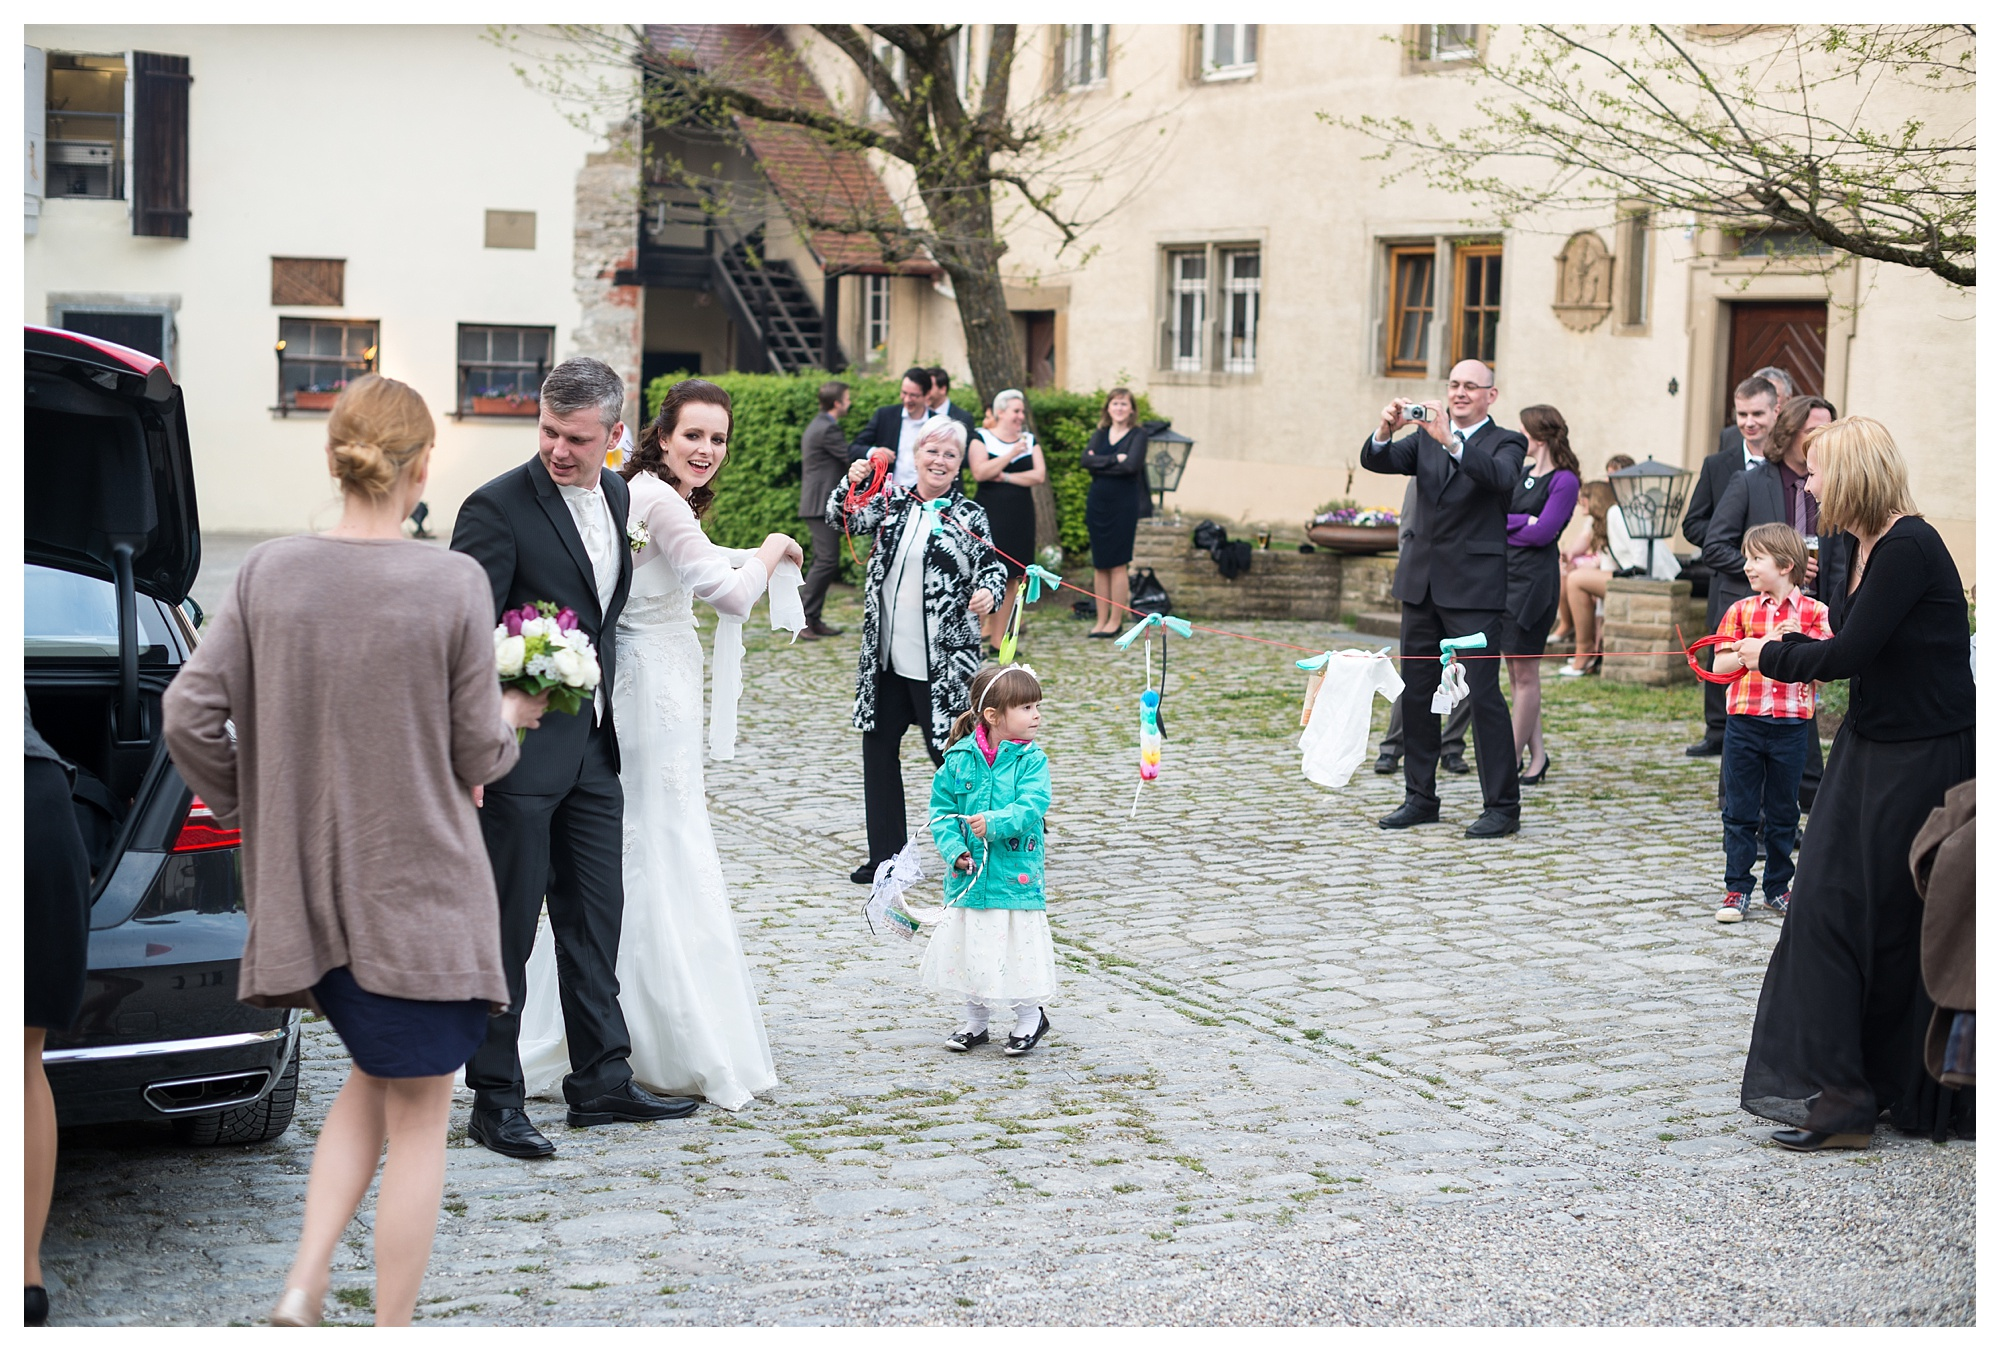 Fotograf Konstanz - Hochzeitsreportage Bettina Martin Heilbronn Elmar Feuerbacher Photography 56 - Wedding Story in Schöntal close to Heilbronn  - 122 -